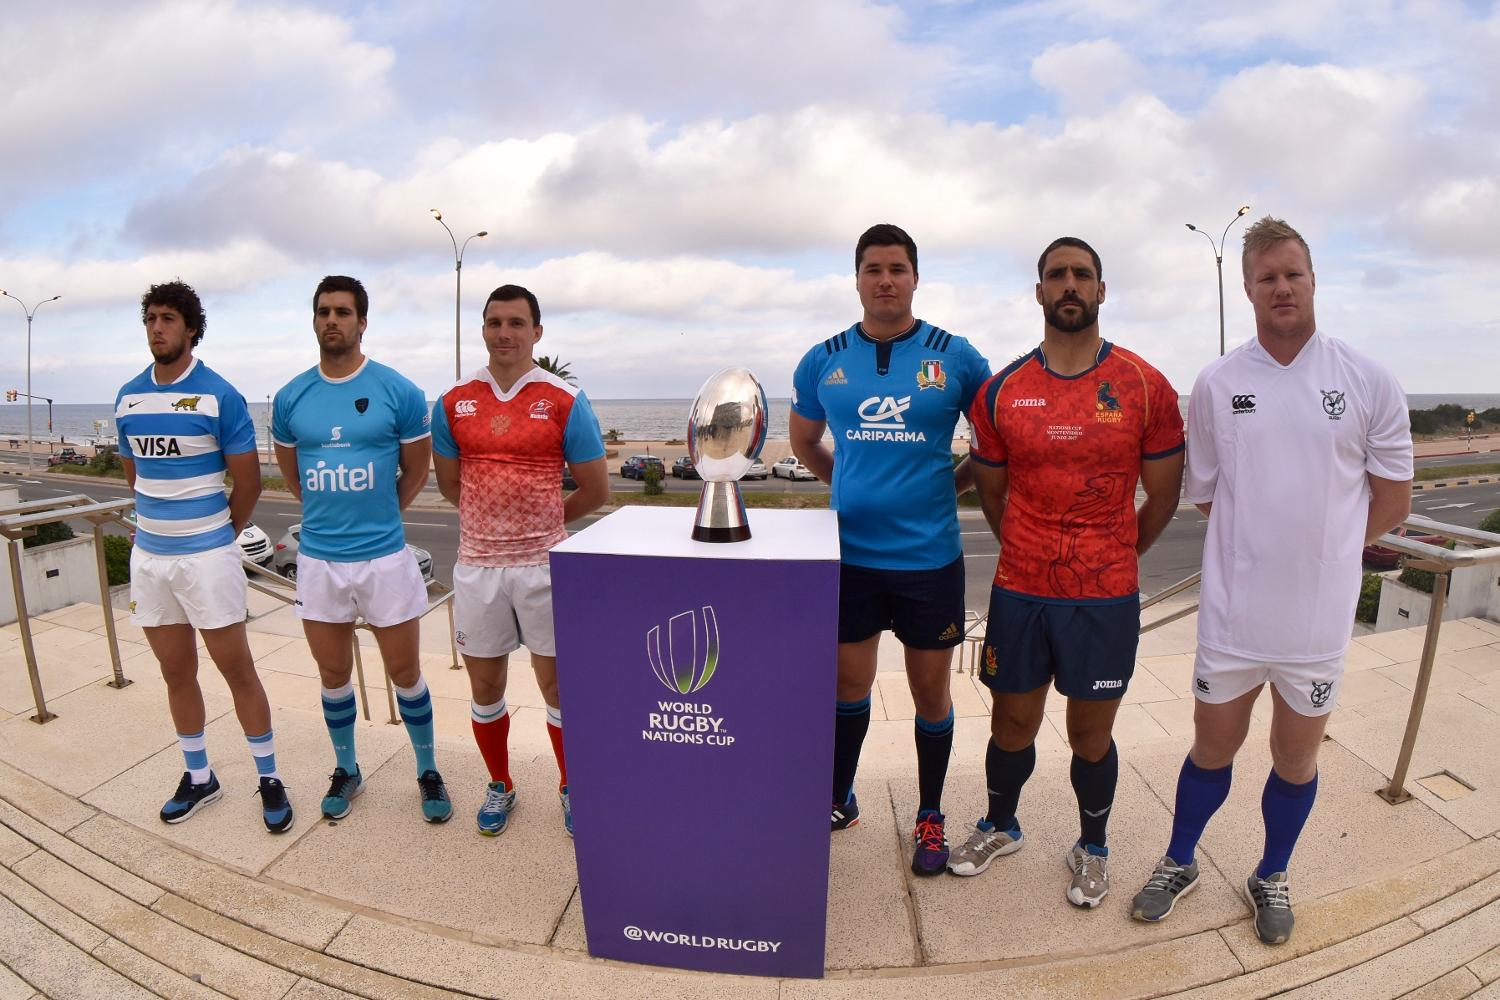 World Rugby Nations Cup 2017: Captains' Photocall